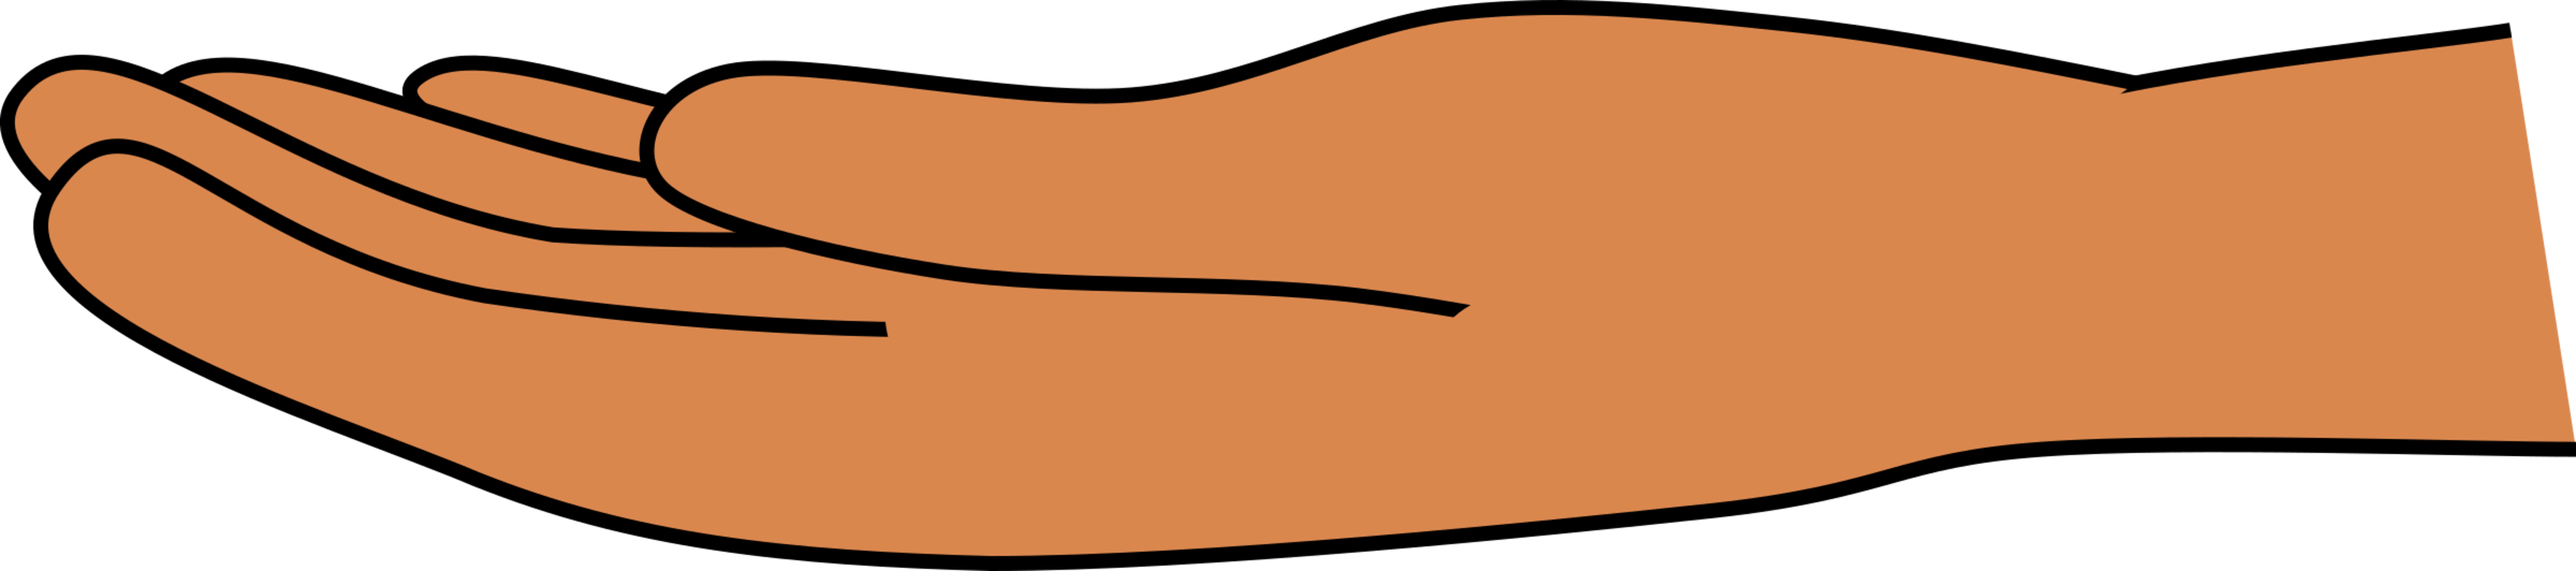 Skin clipart. Hand human computer icons